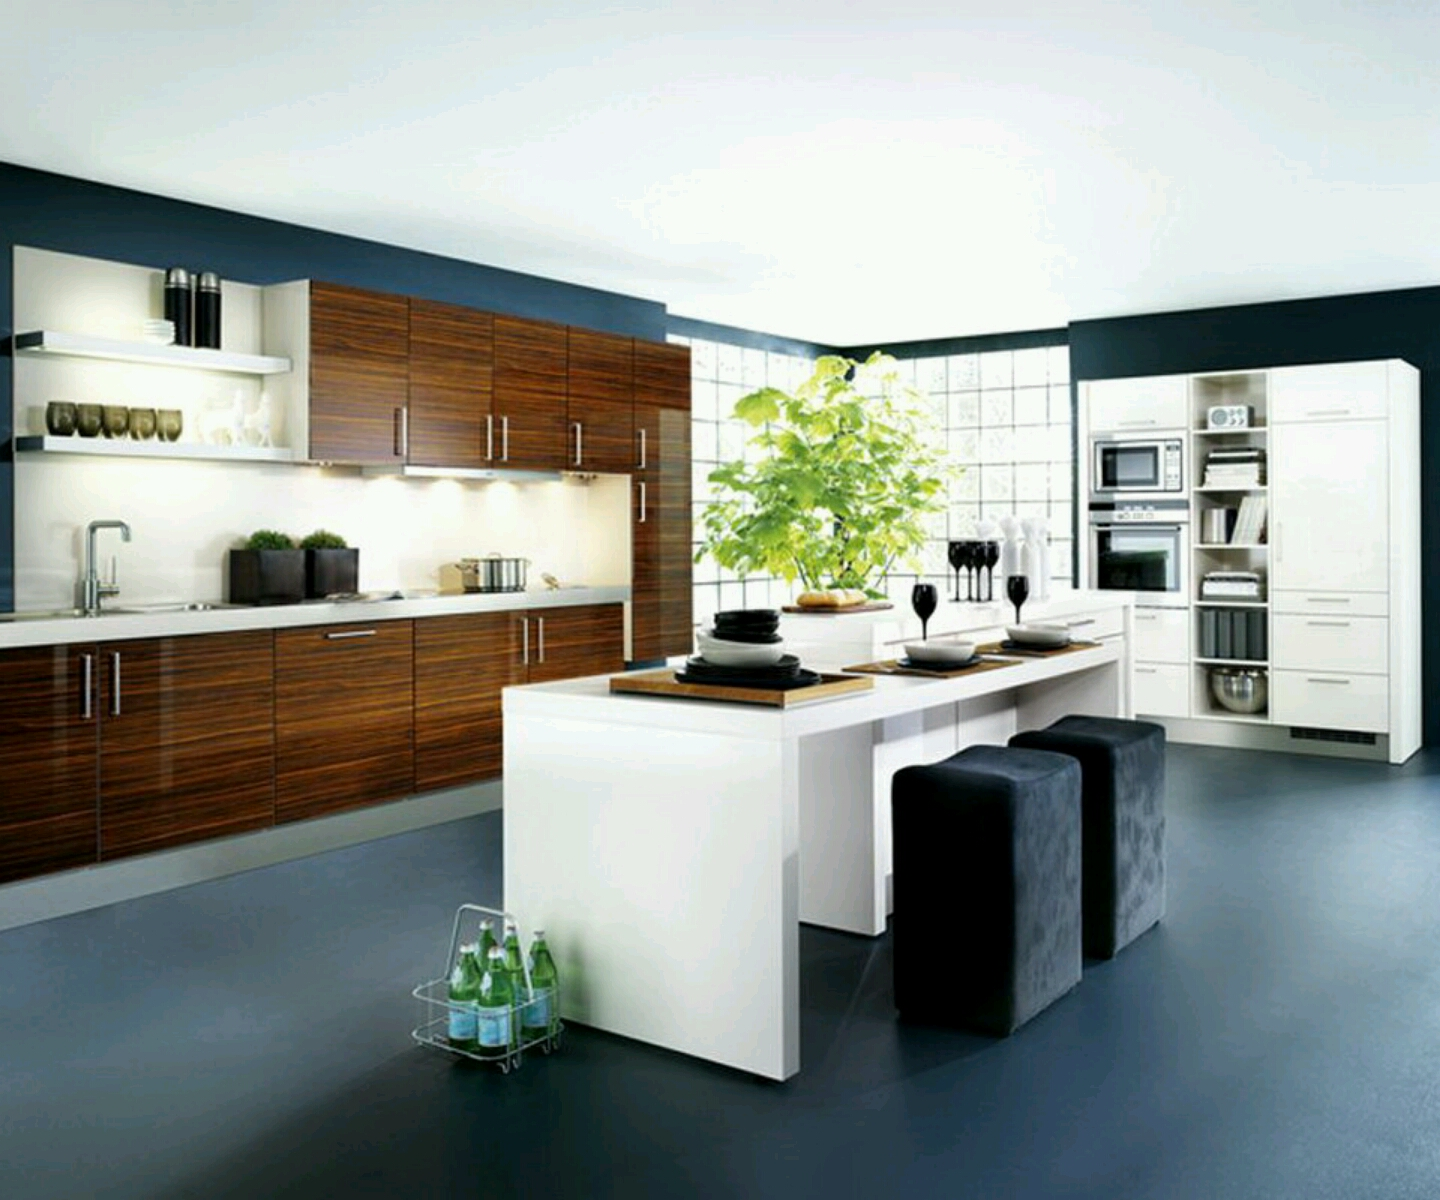 New home designs latest kitchen cabinets designs modern for Kitchen contemporary style